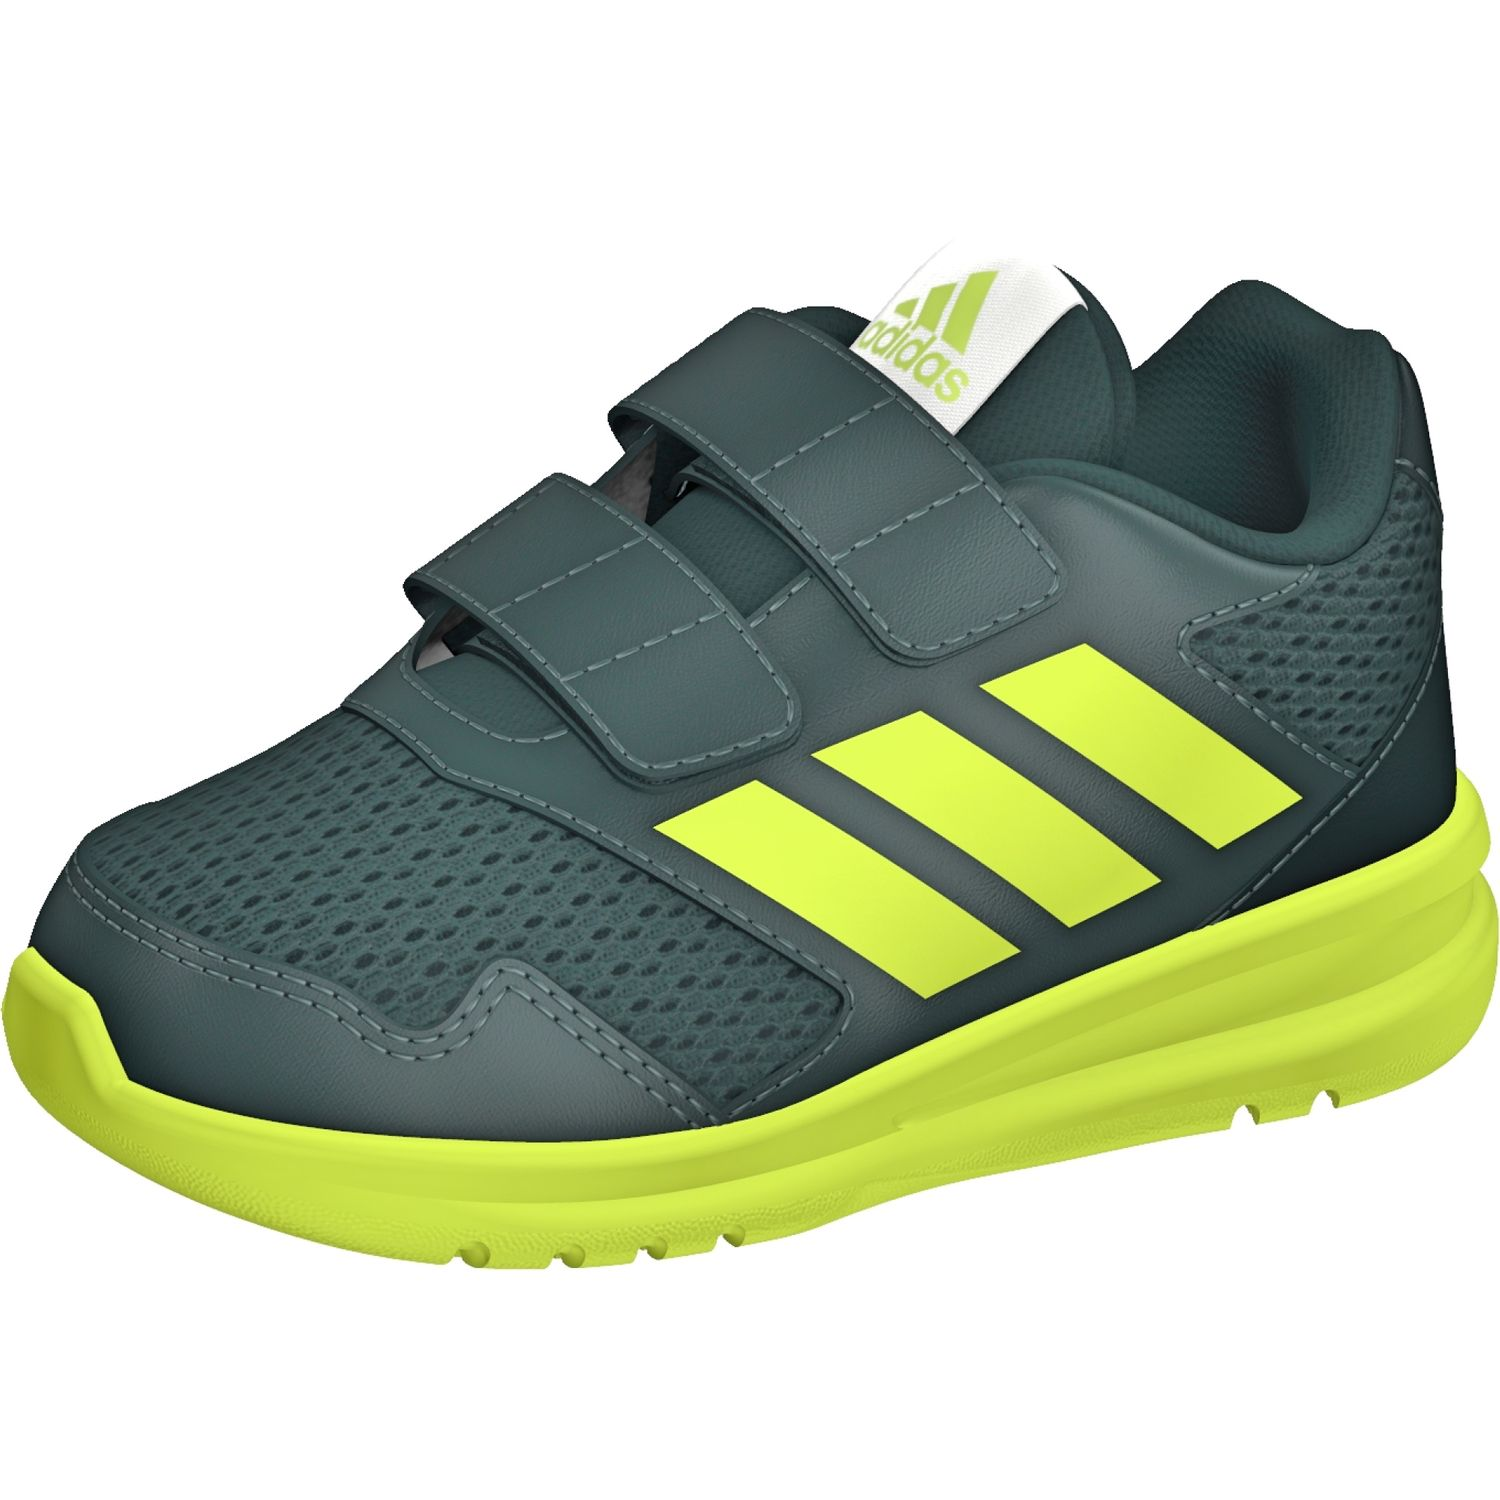 meet 79267 f2a9e adidas unisex kids sneaker shoes running shoes AltaSport CF I CQ0025